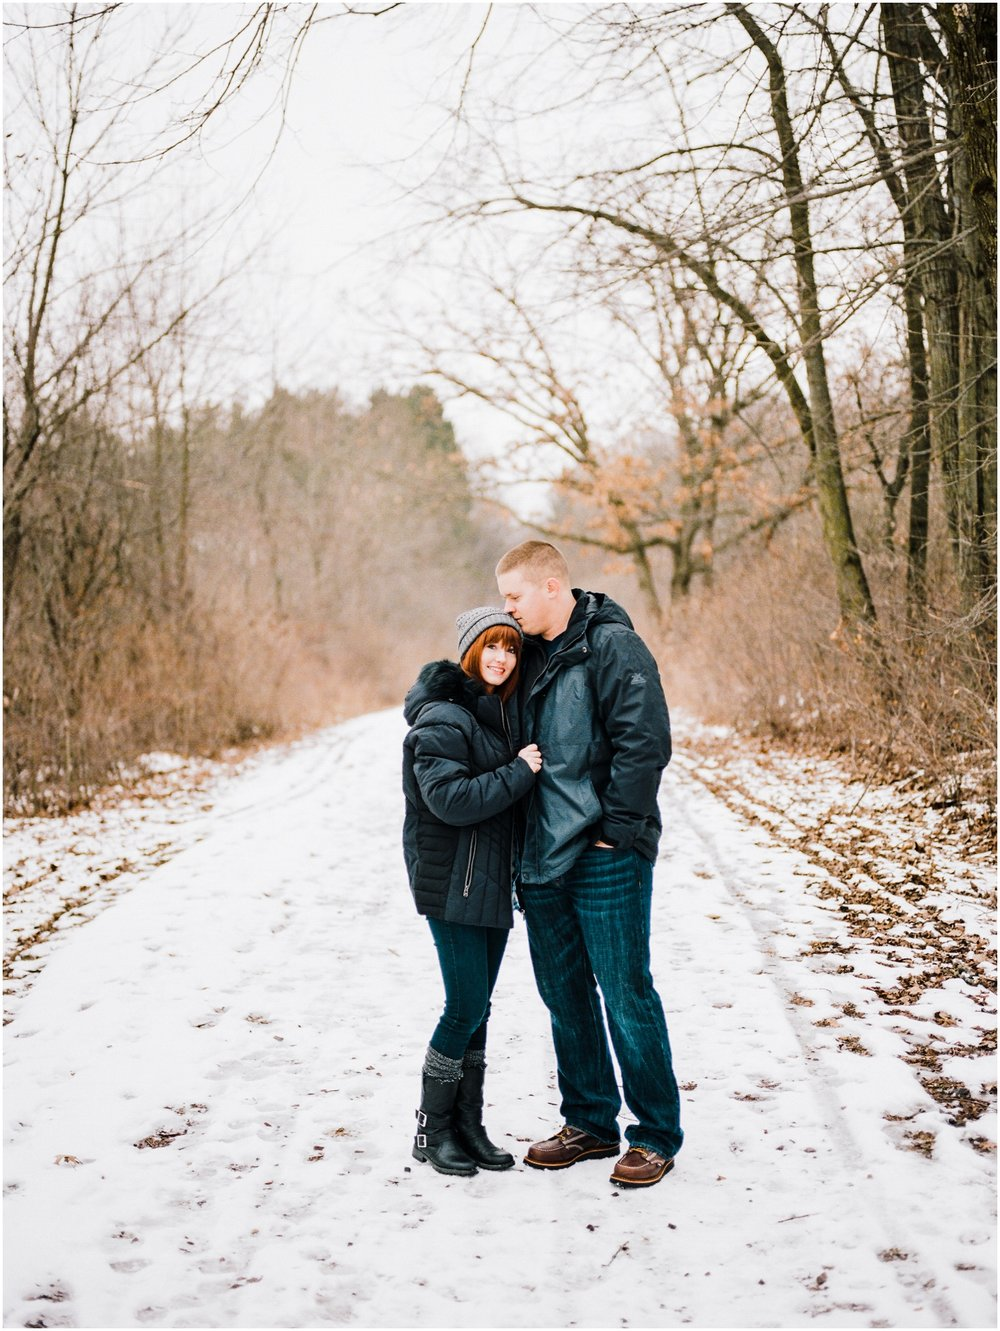 Devils-Lake-Baraboo-Wisconsin-Engagement-Photographer-Lindsey-And-Cody-Engaged-187.jpg